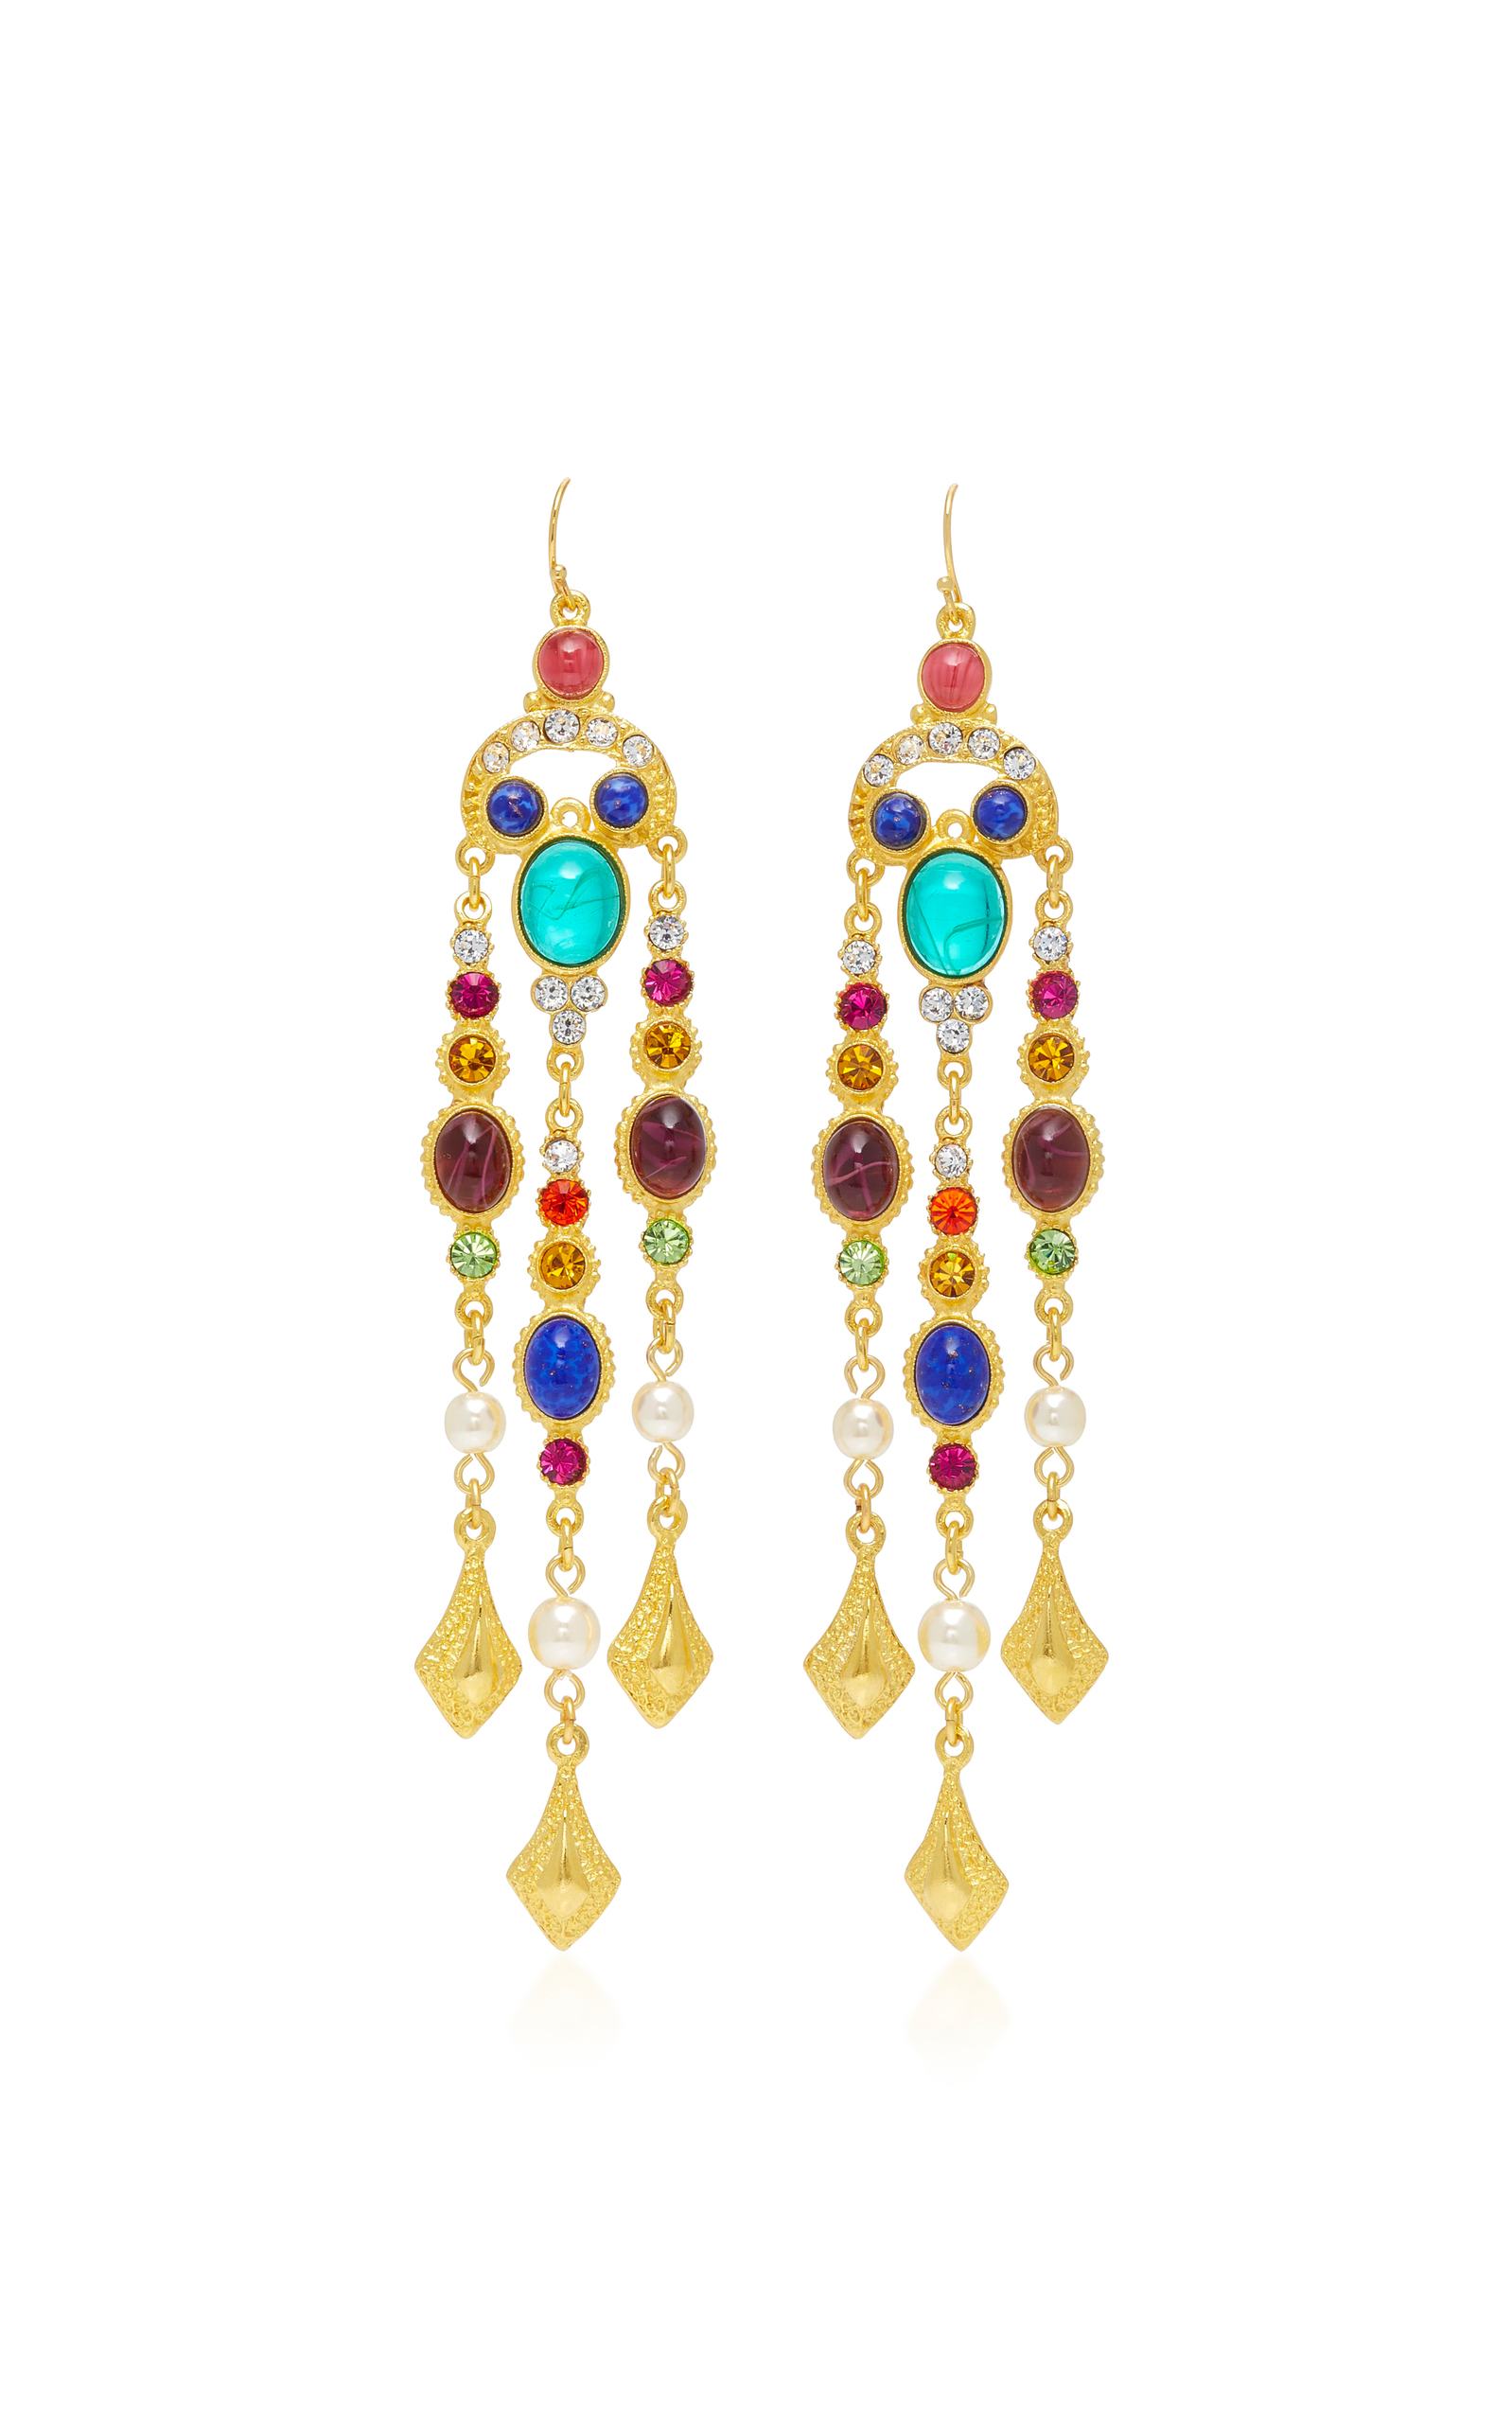 Gold-Plated Brass Crystal Earrings Ben-Amun 372l9iDB